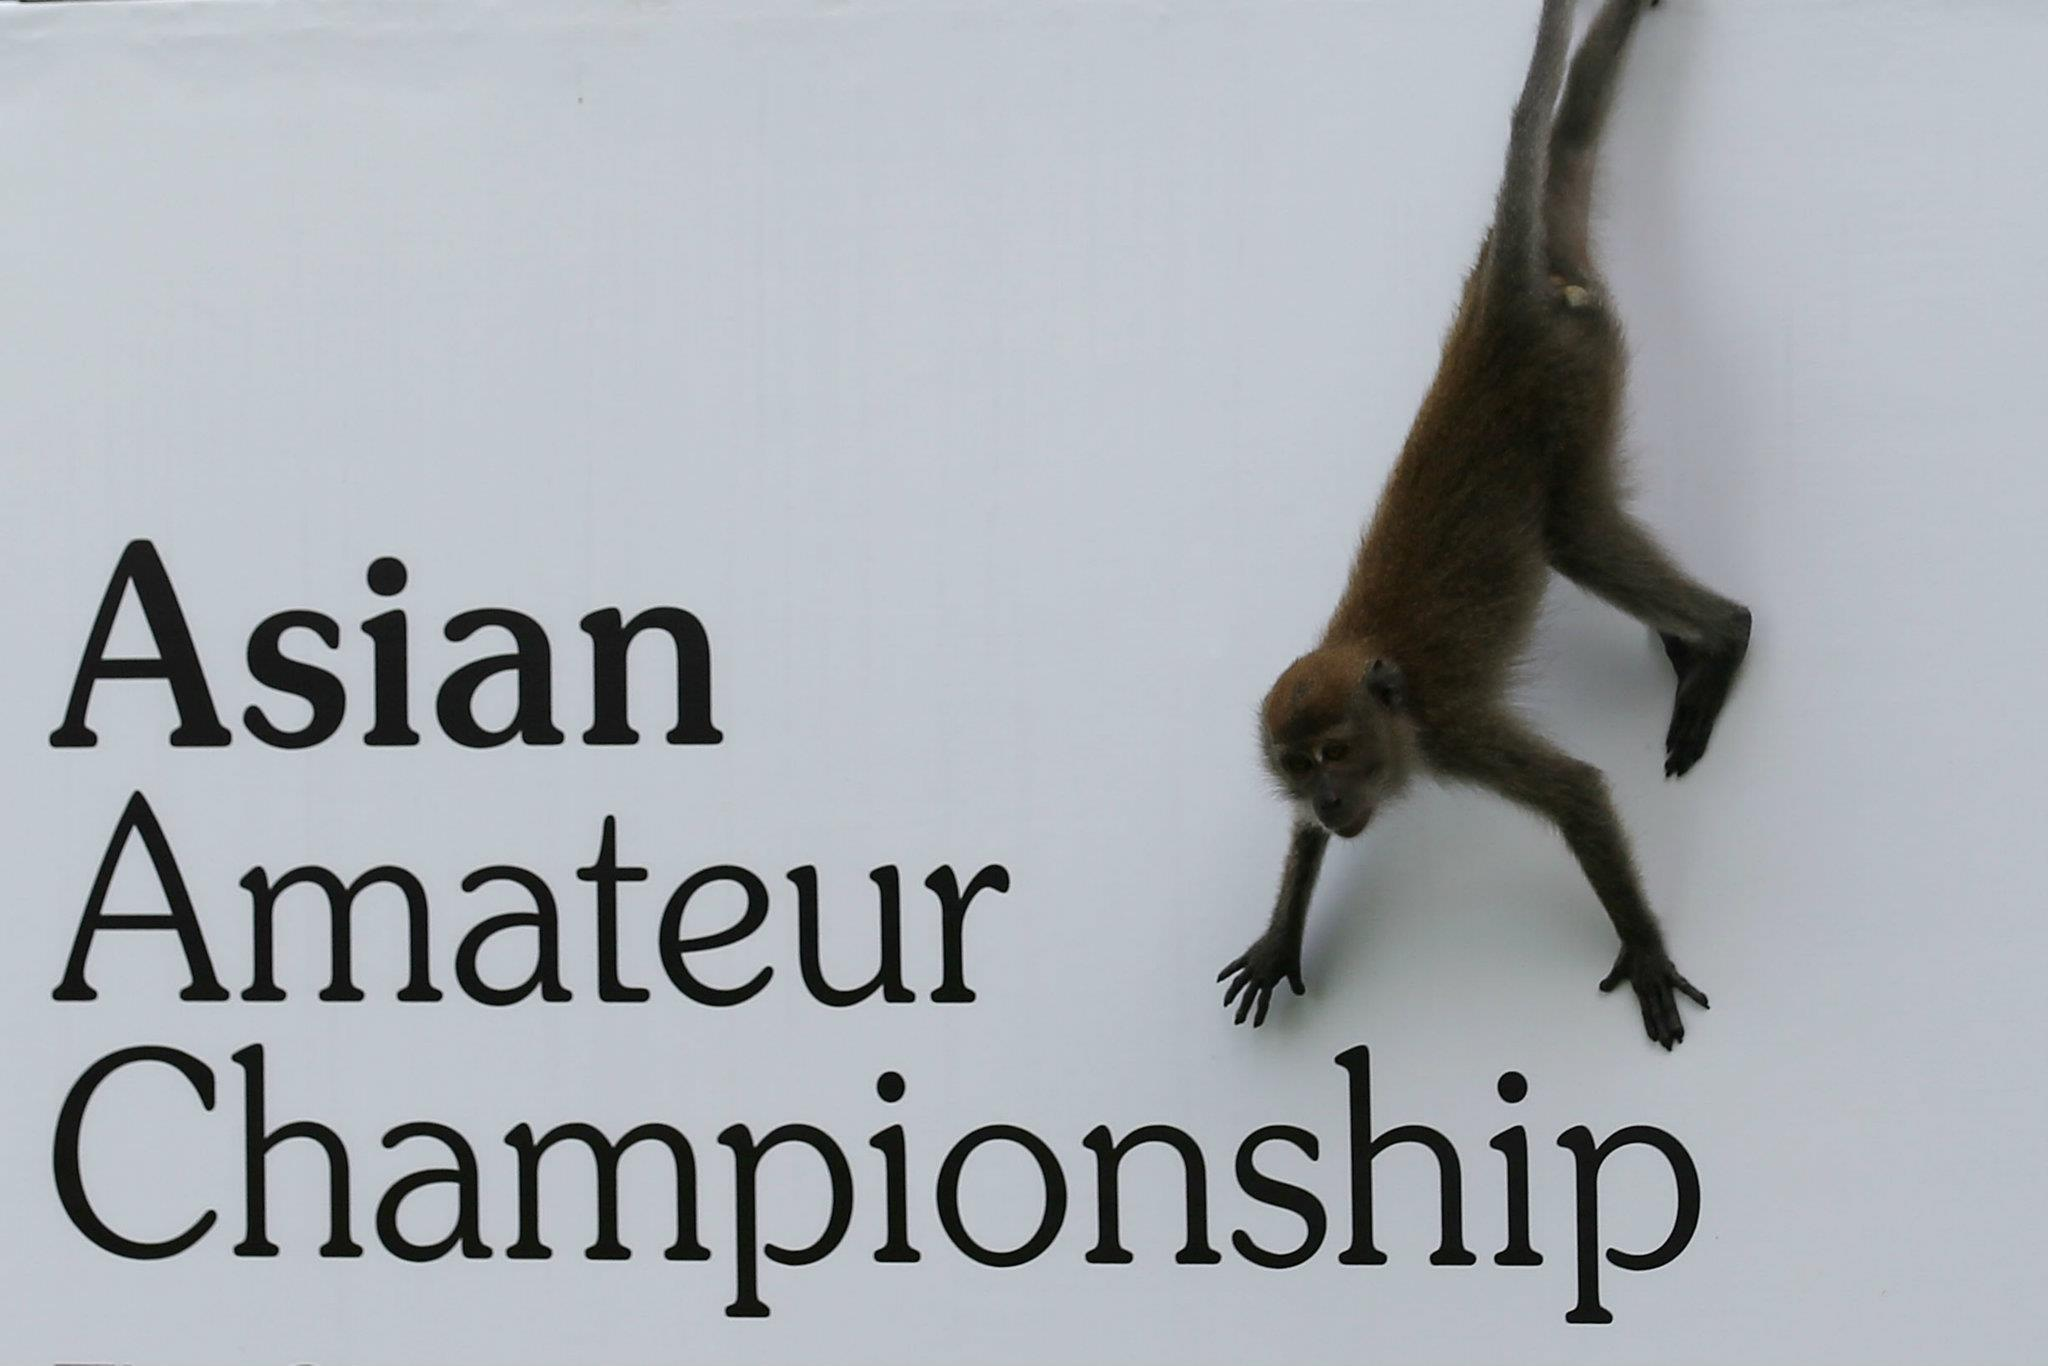 Asian Amateur winner of asian amateur championship to receive invitation